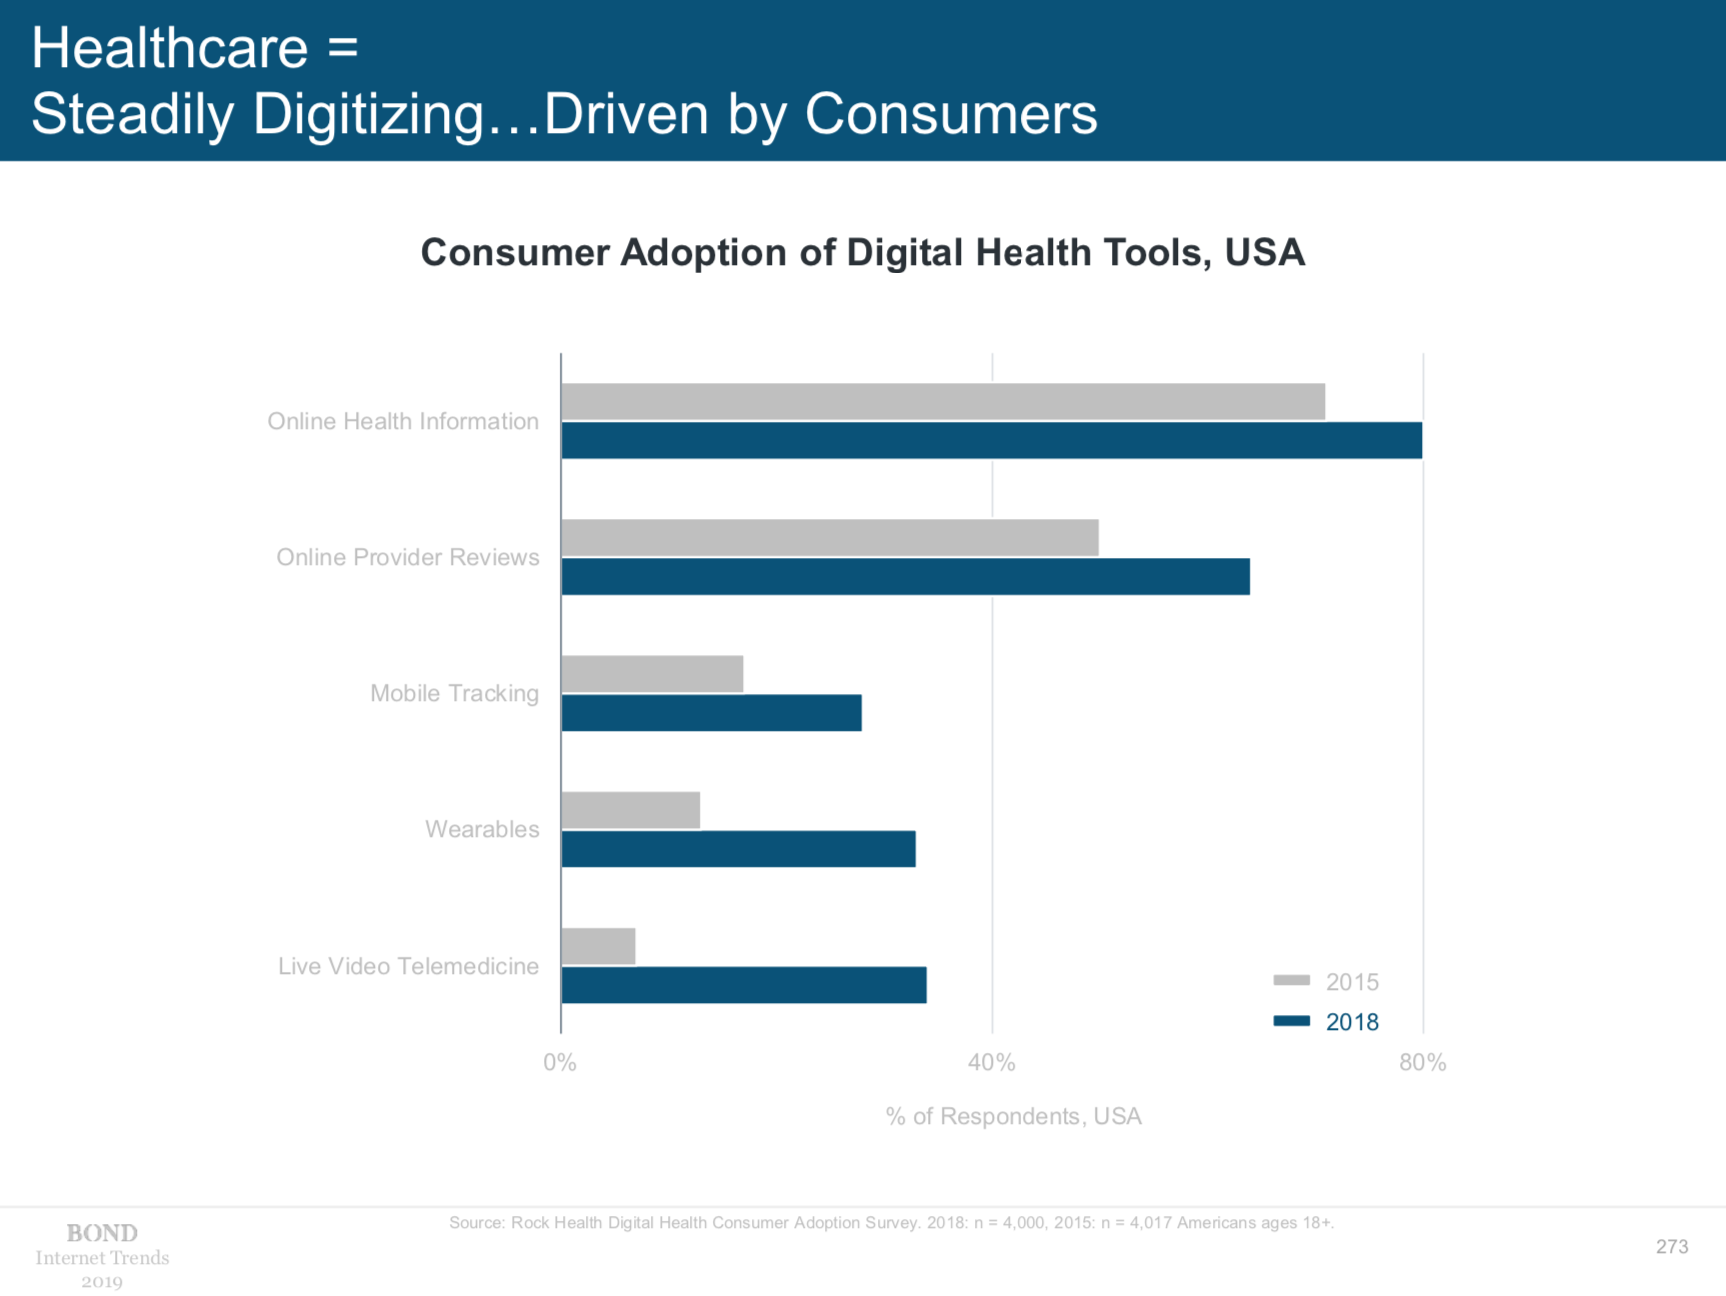 Consumer adoption of digital health tools is soaring